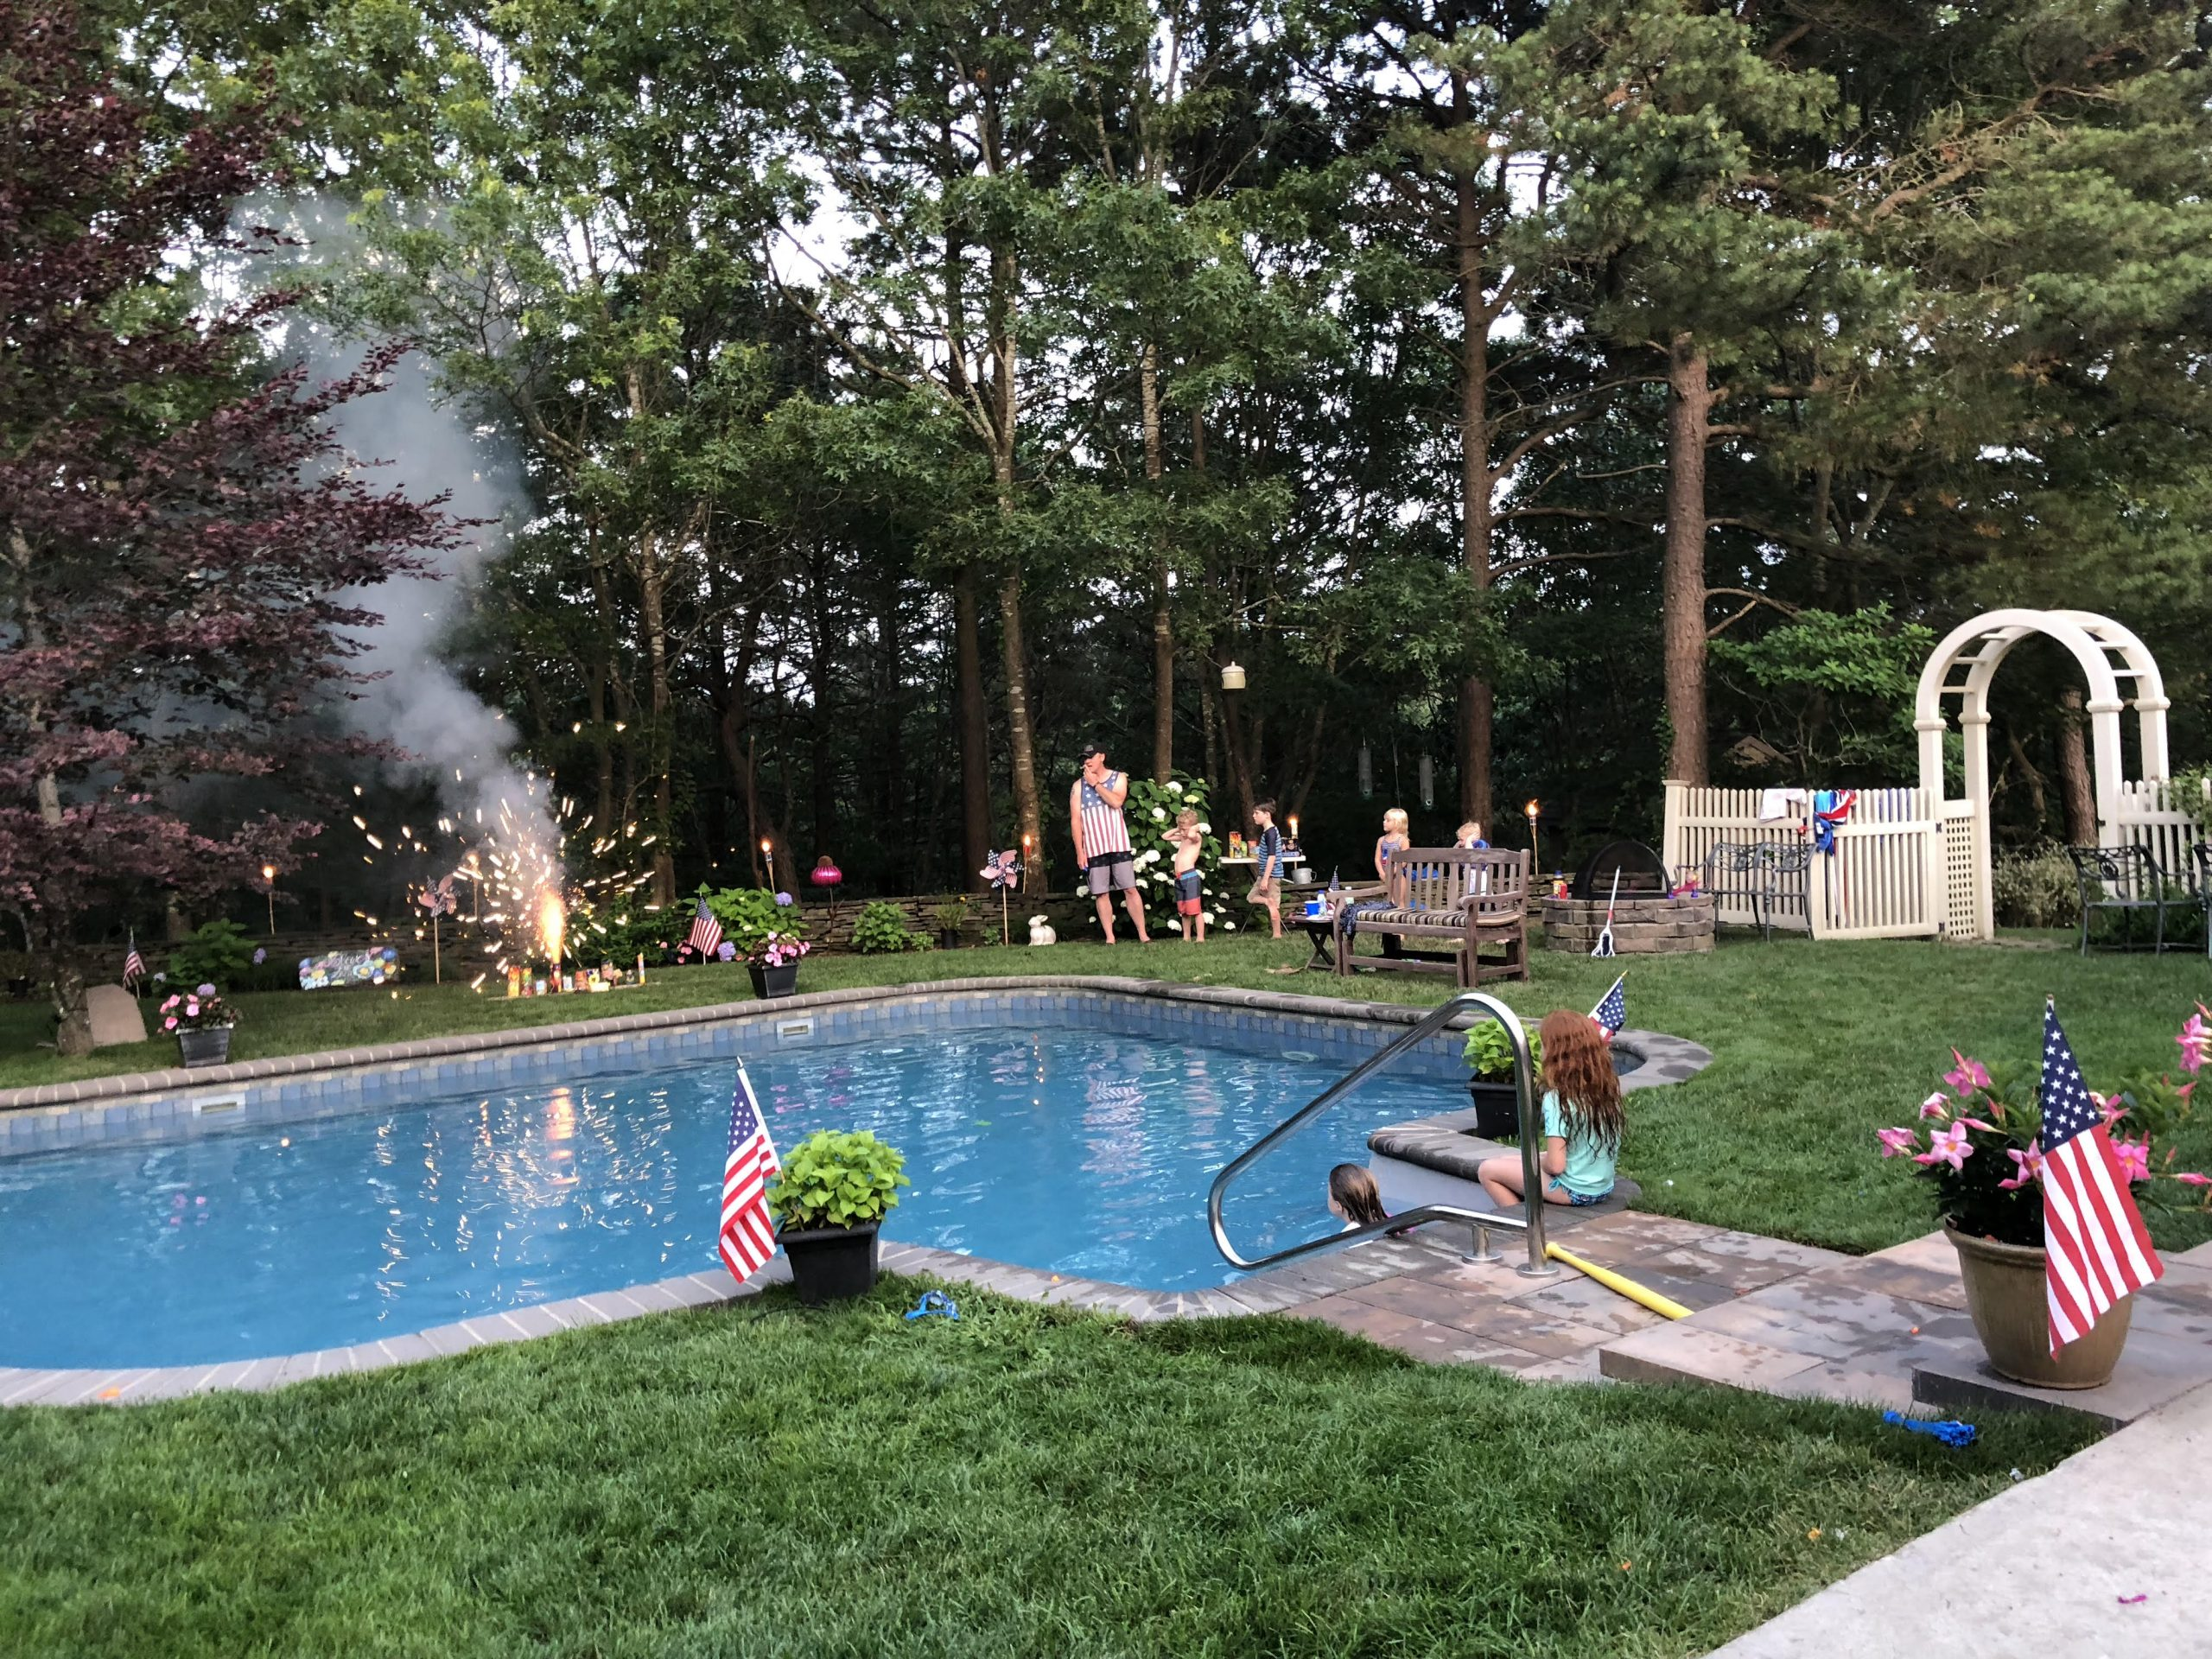 Backyard 4th of July parties are a must in Southampton Pines. All good fun welcome.